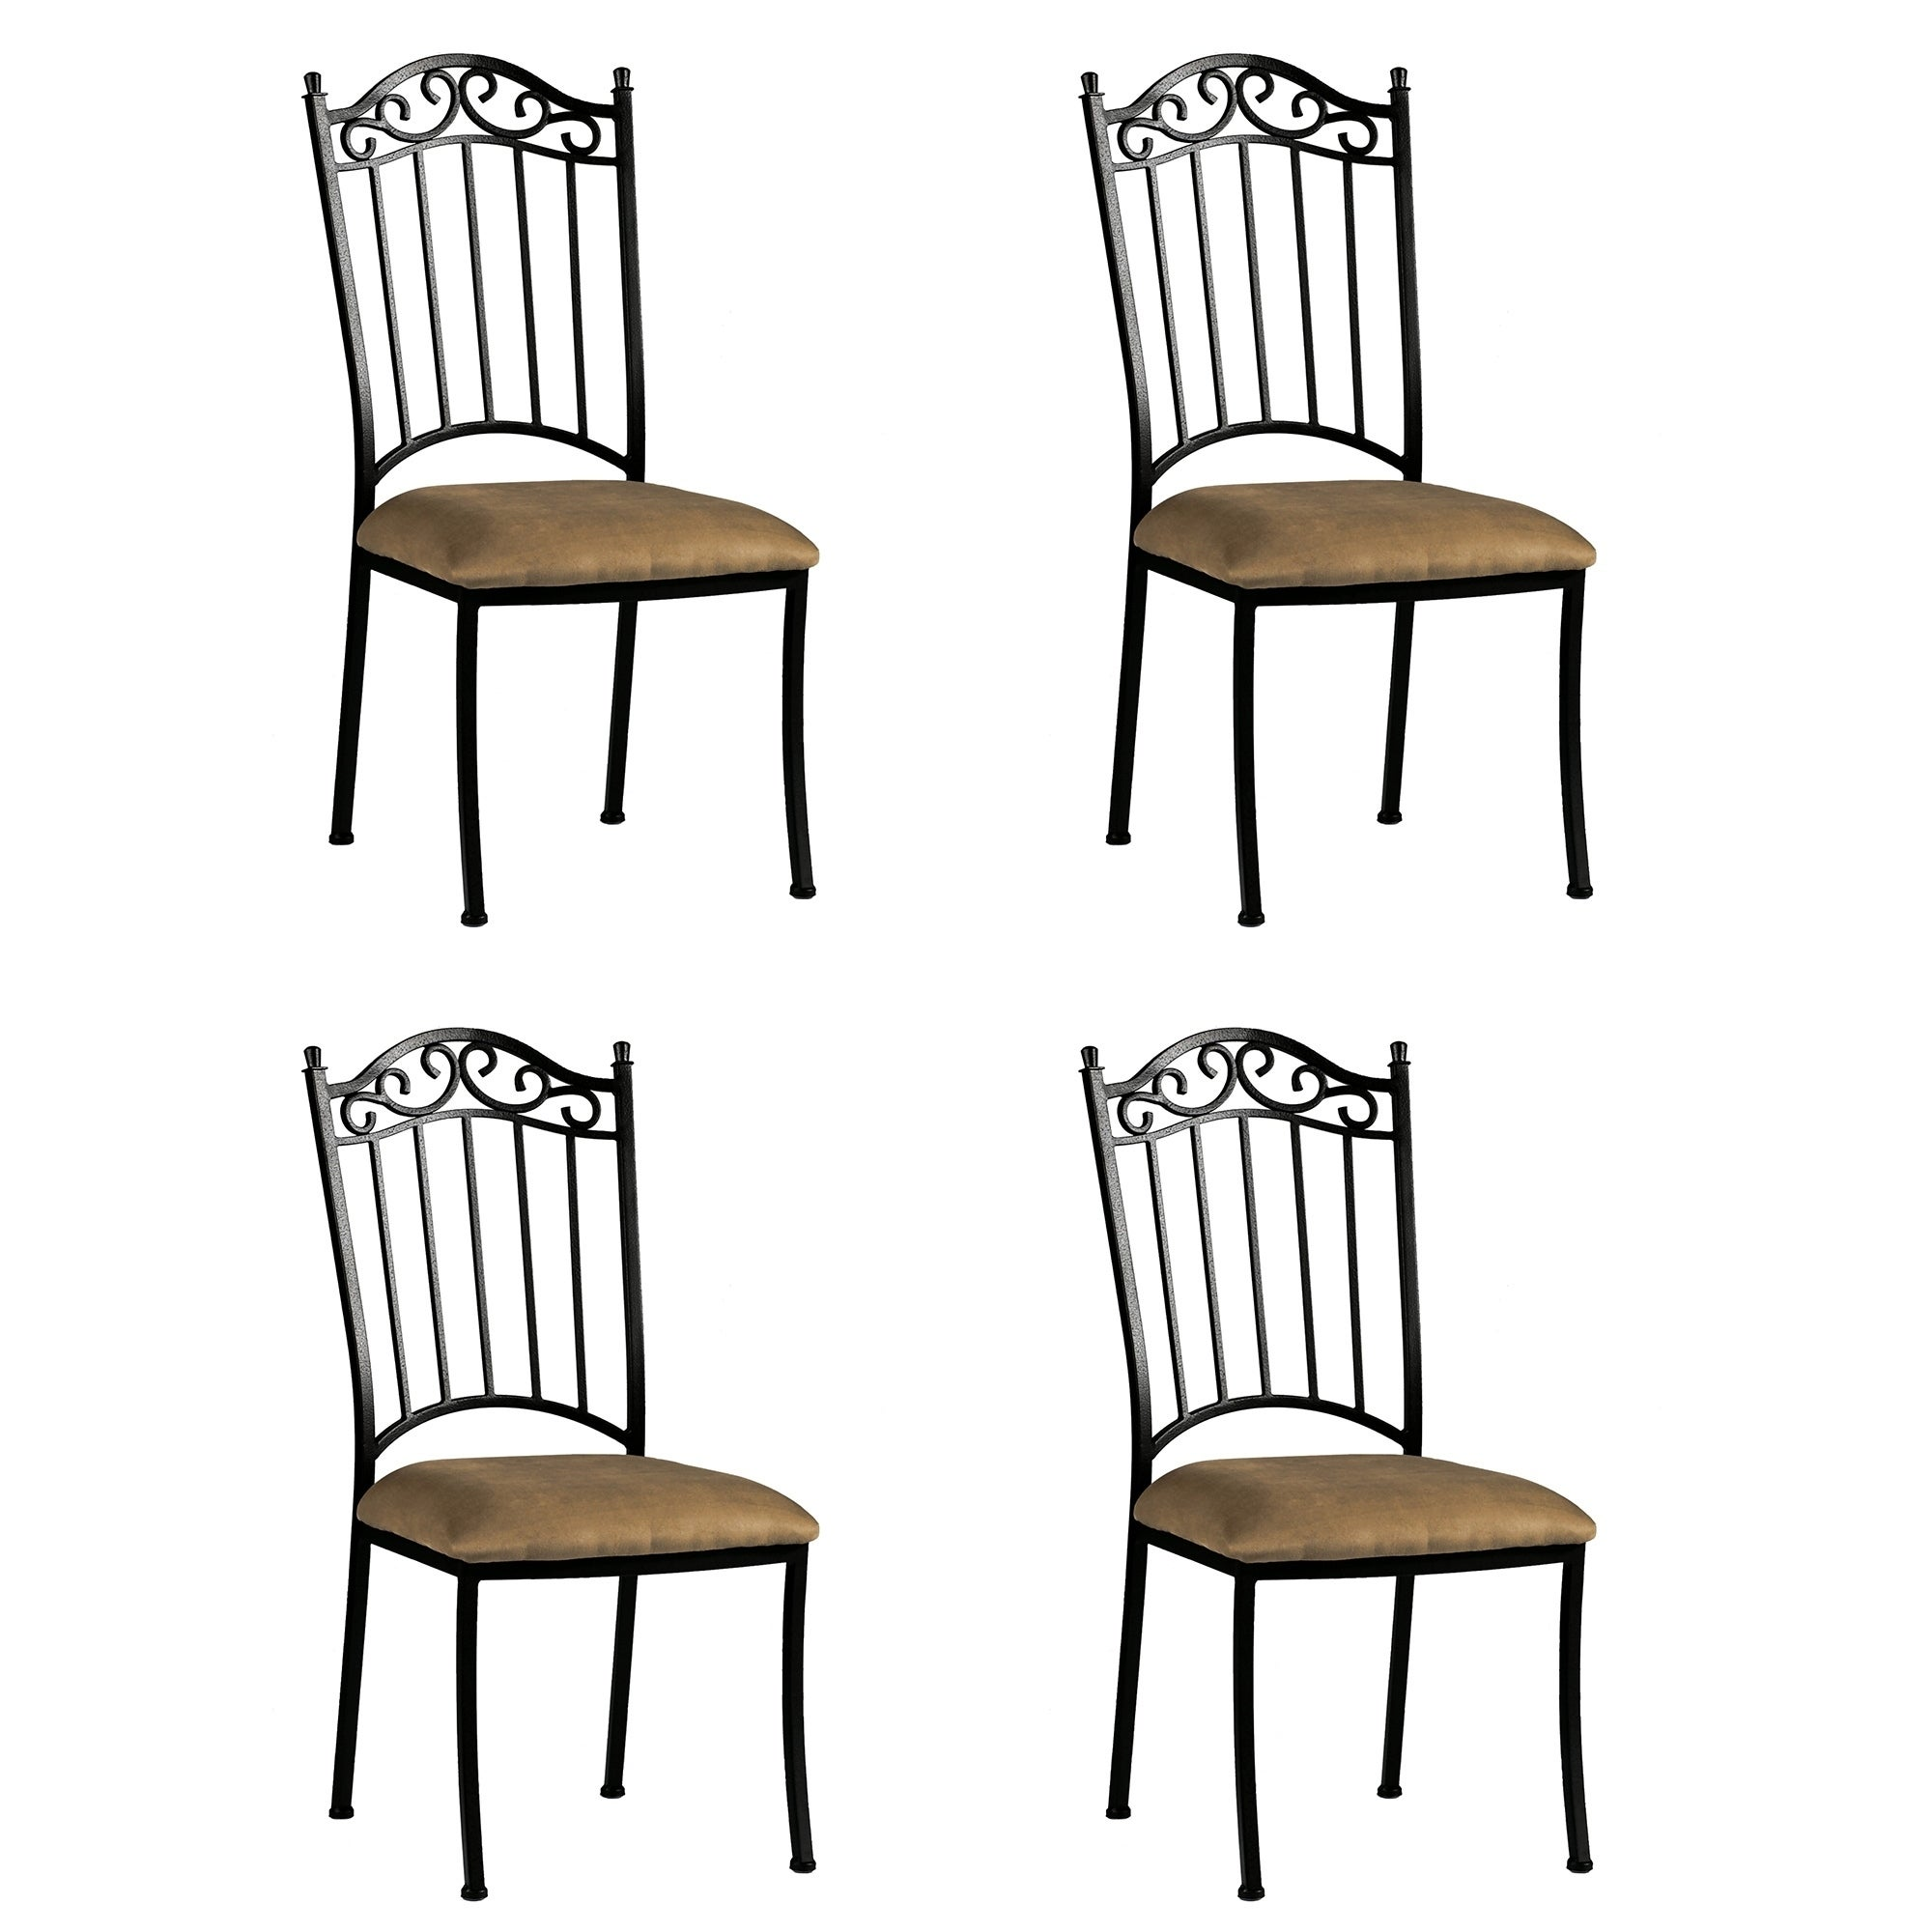 Somette Antique Taupe Suede Wrought Iron Dining Chair Set Of 4 N A Free Shipping Today 8912737